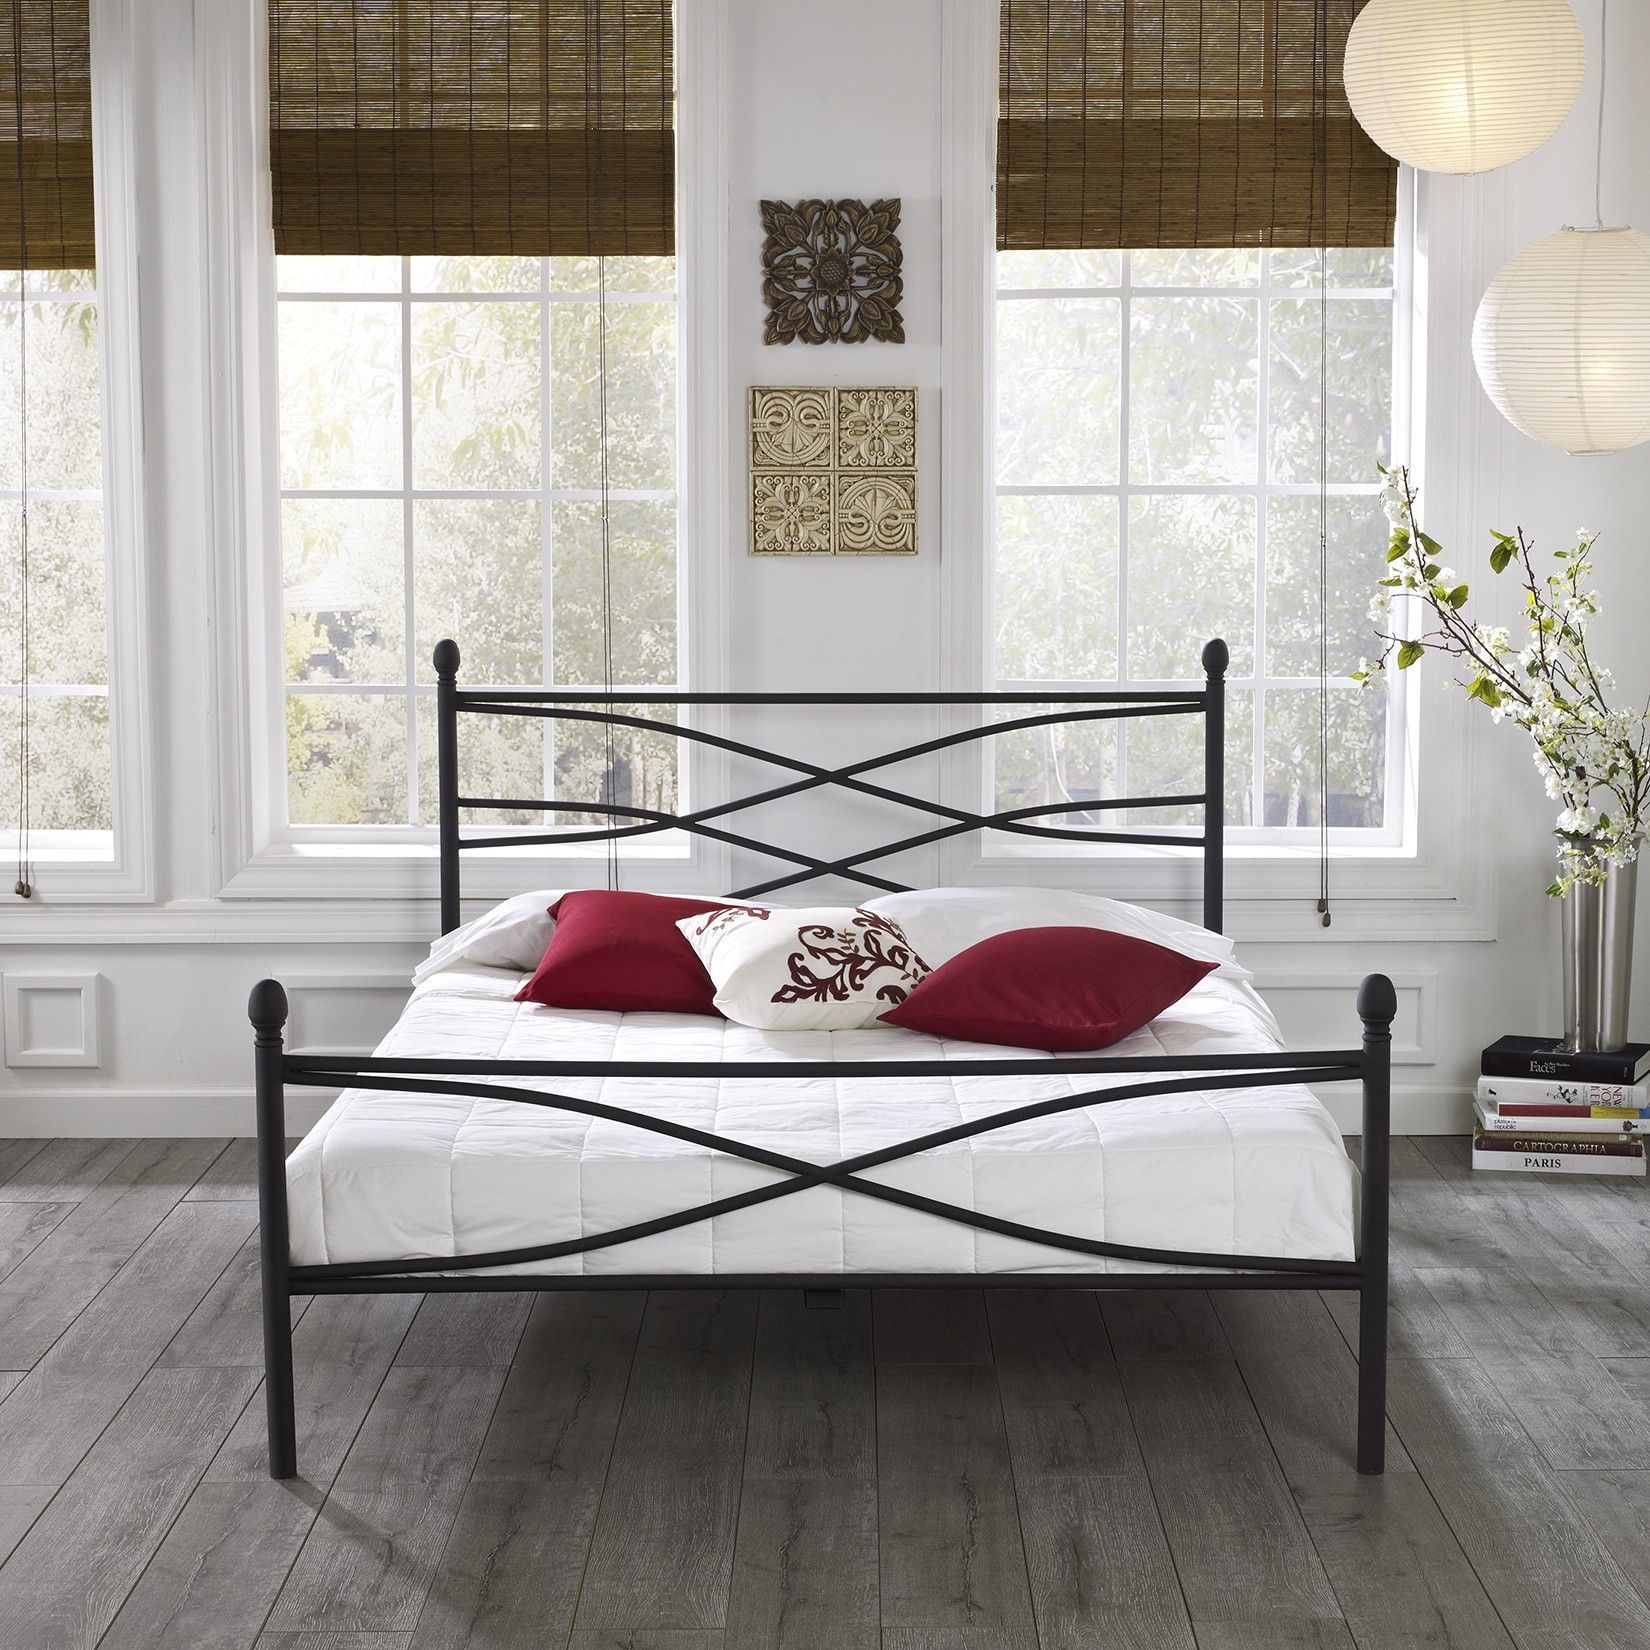 black coated wrought iron leirvik bed frame bedroom magnificent queen bedroom wall decor ikea